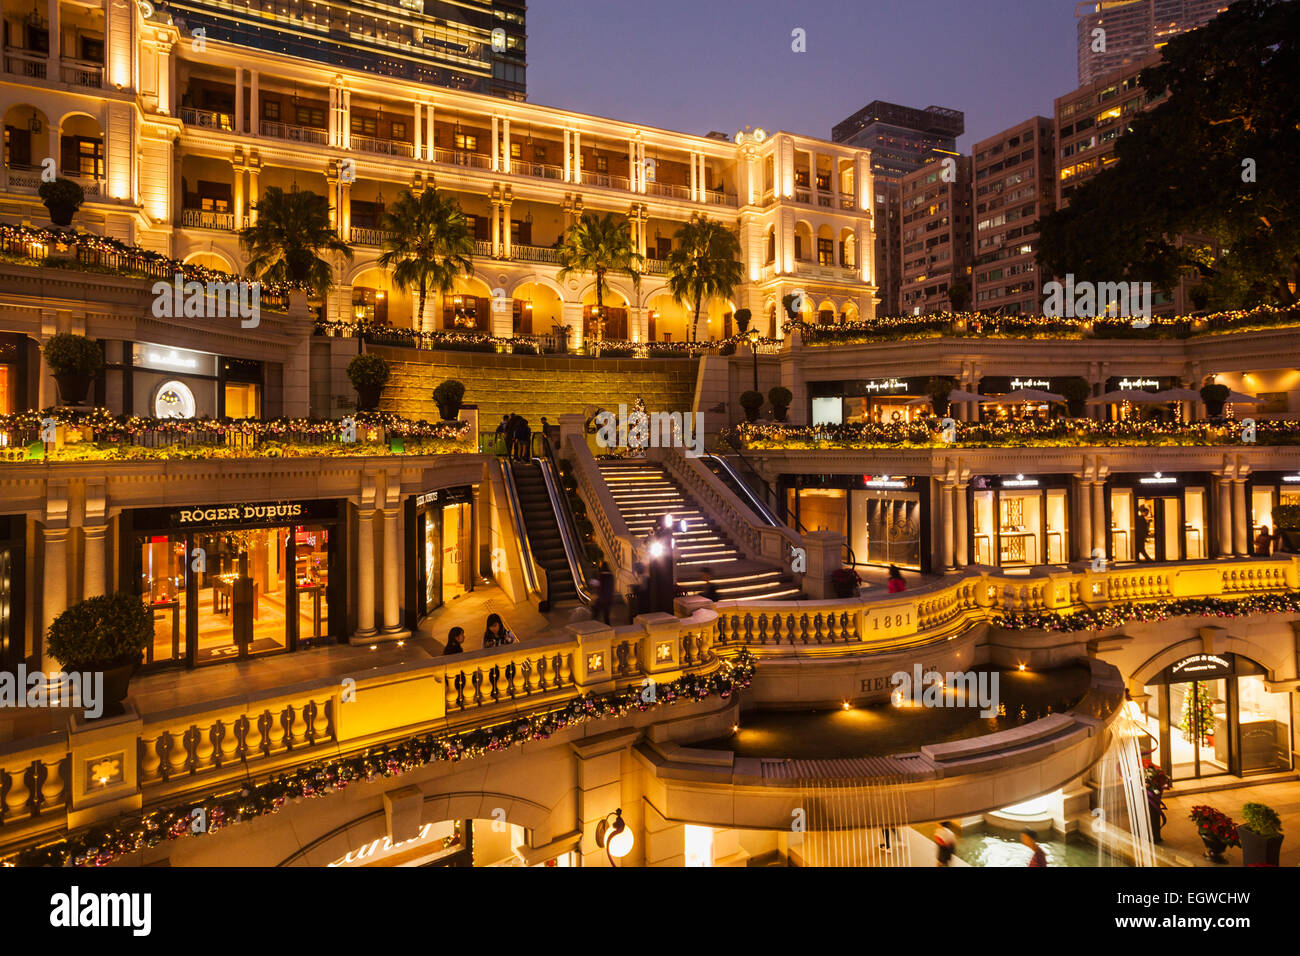 China, Hong Kong, Kowloon, Tsim Sha Tsui, 1881 Heritage Hotel and Shopping  Centre